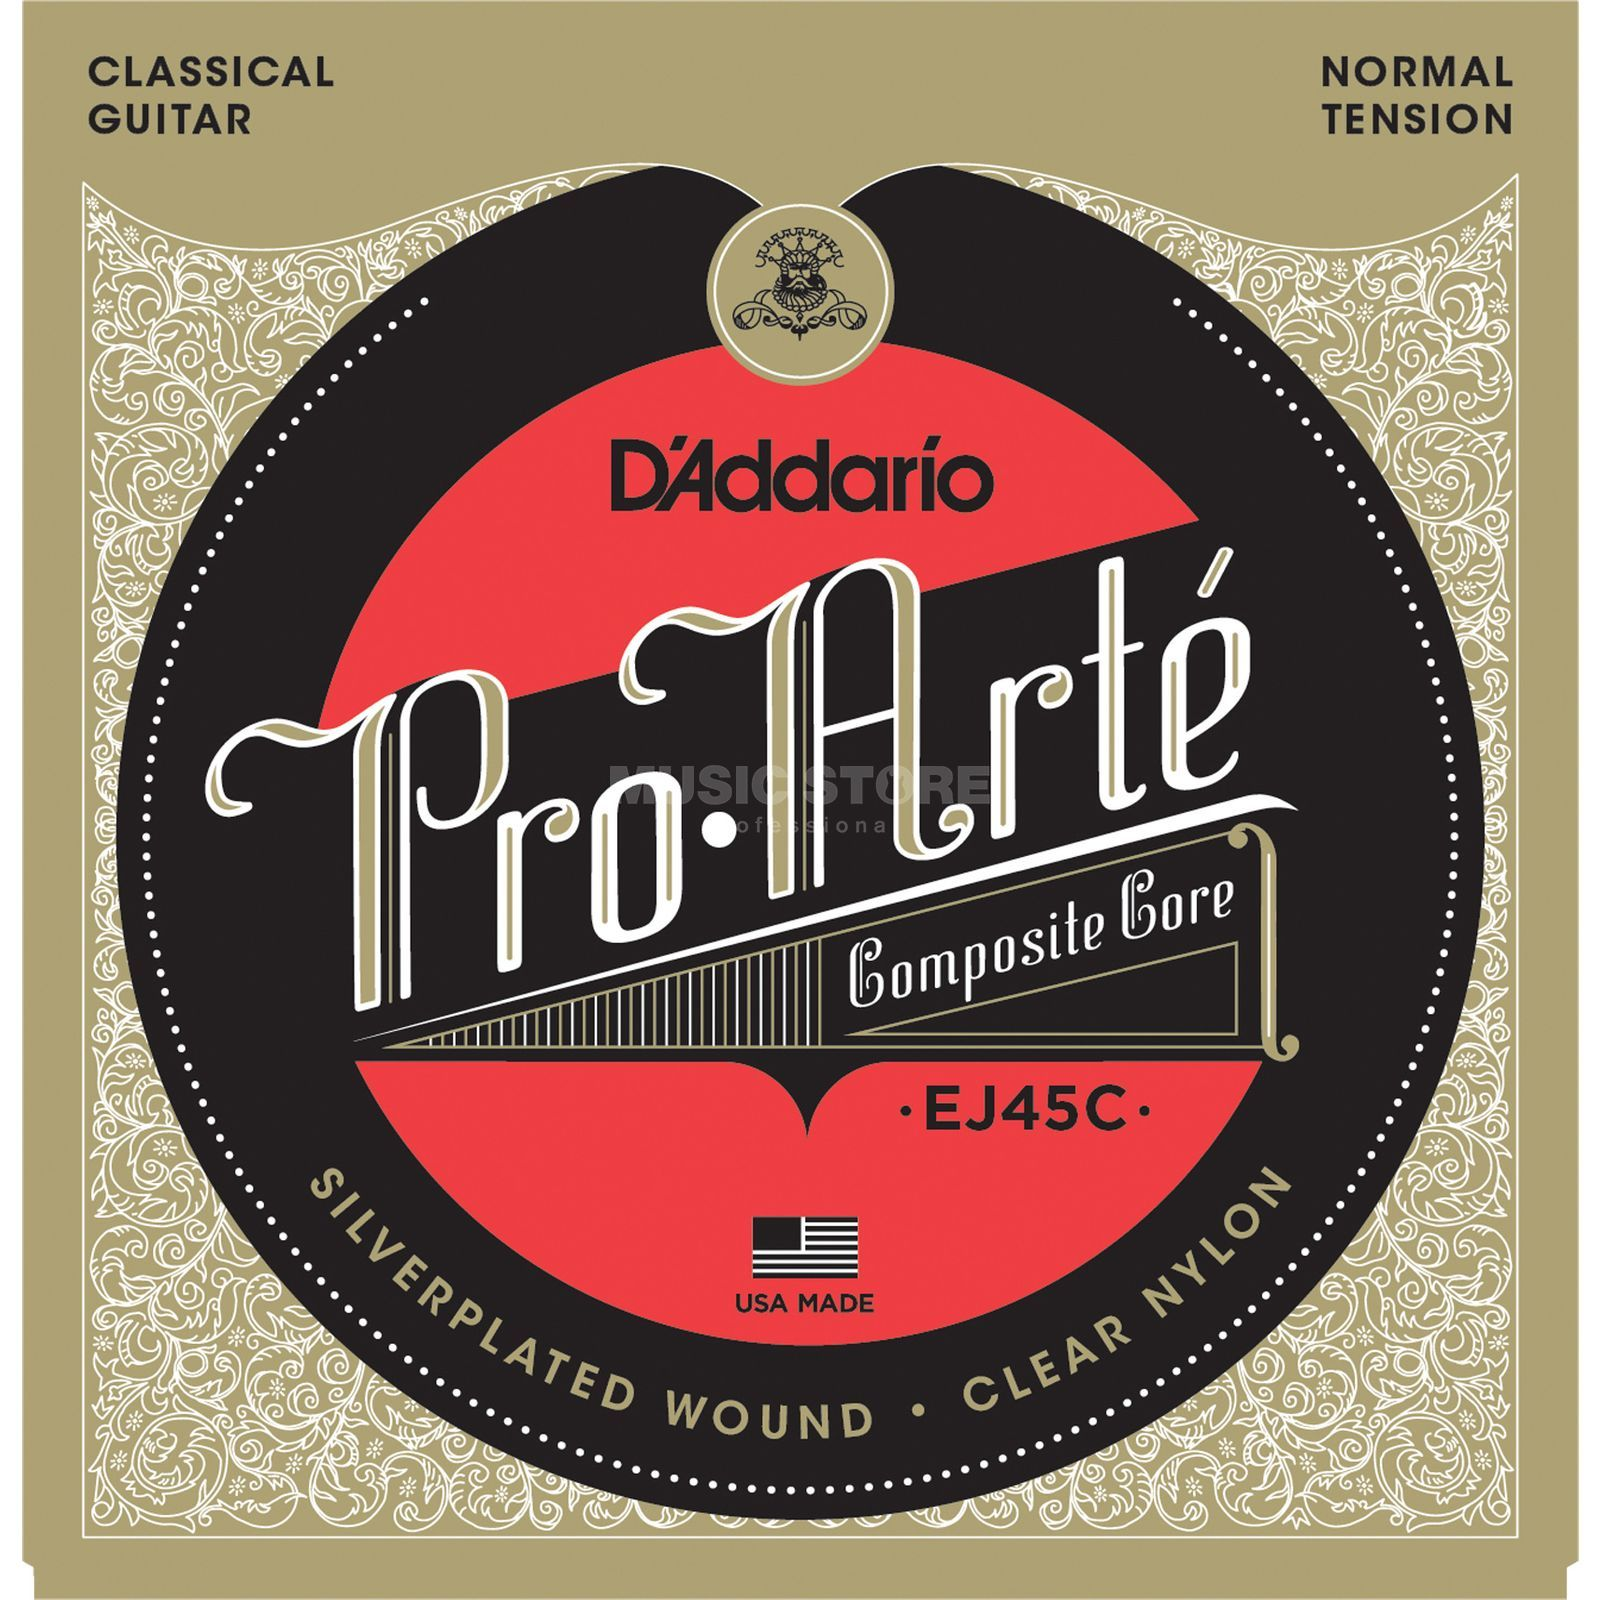 D'Addario Strings Composites EJ45C Pro Arte, Normal Produktbillede